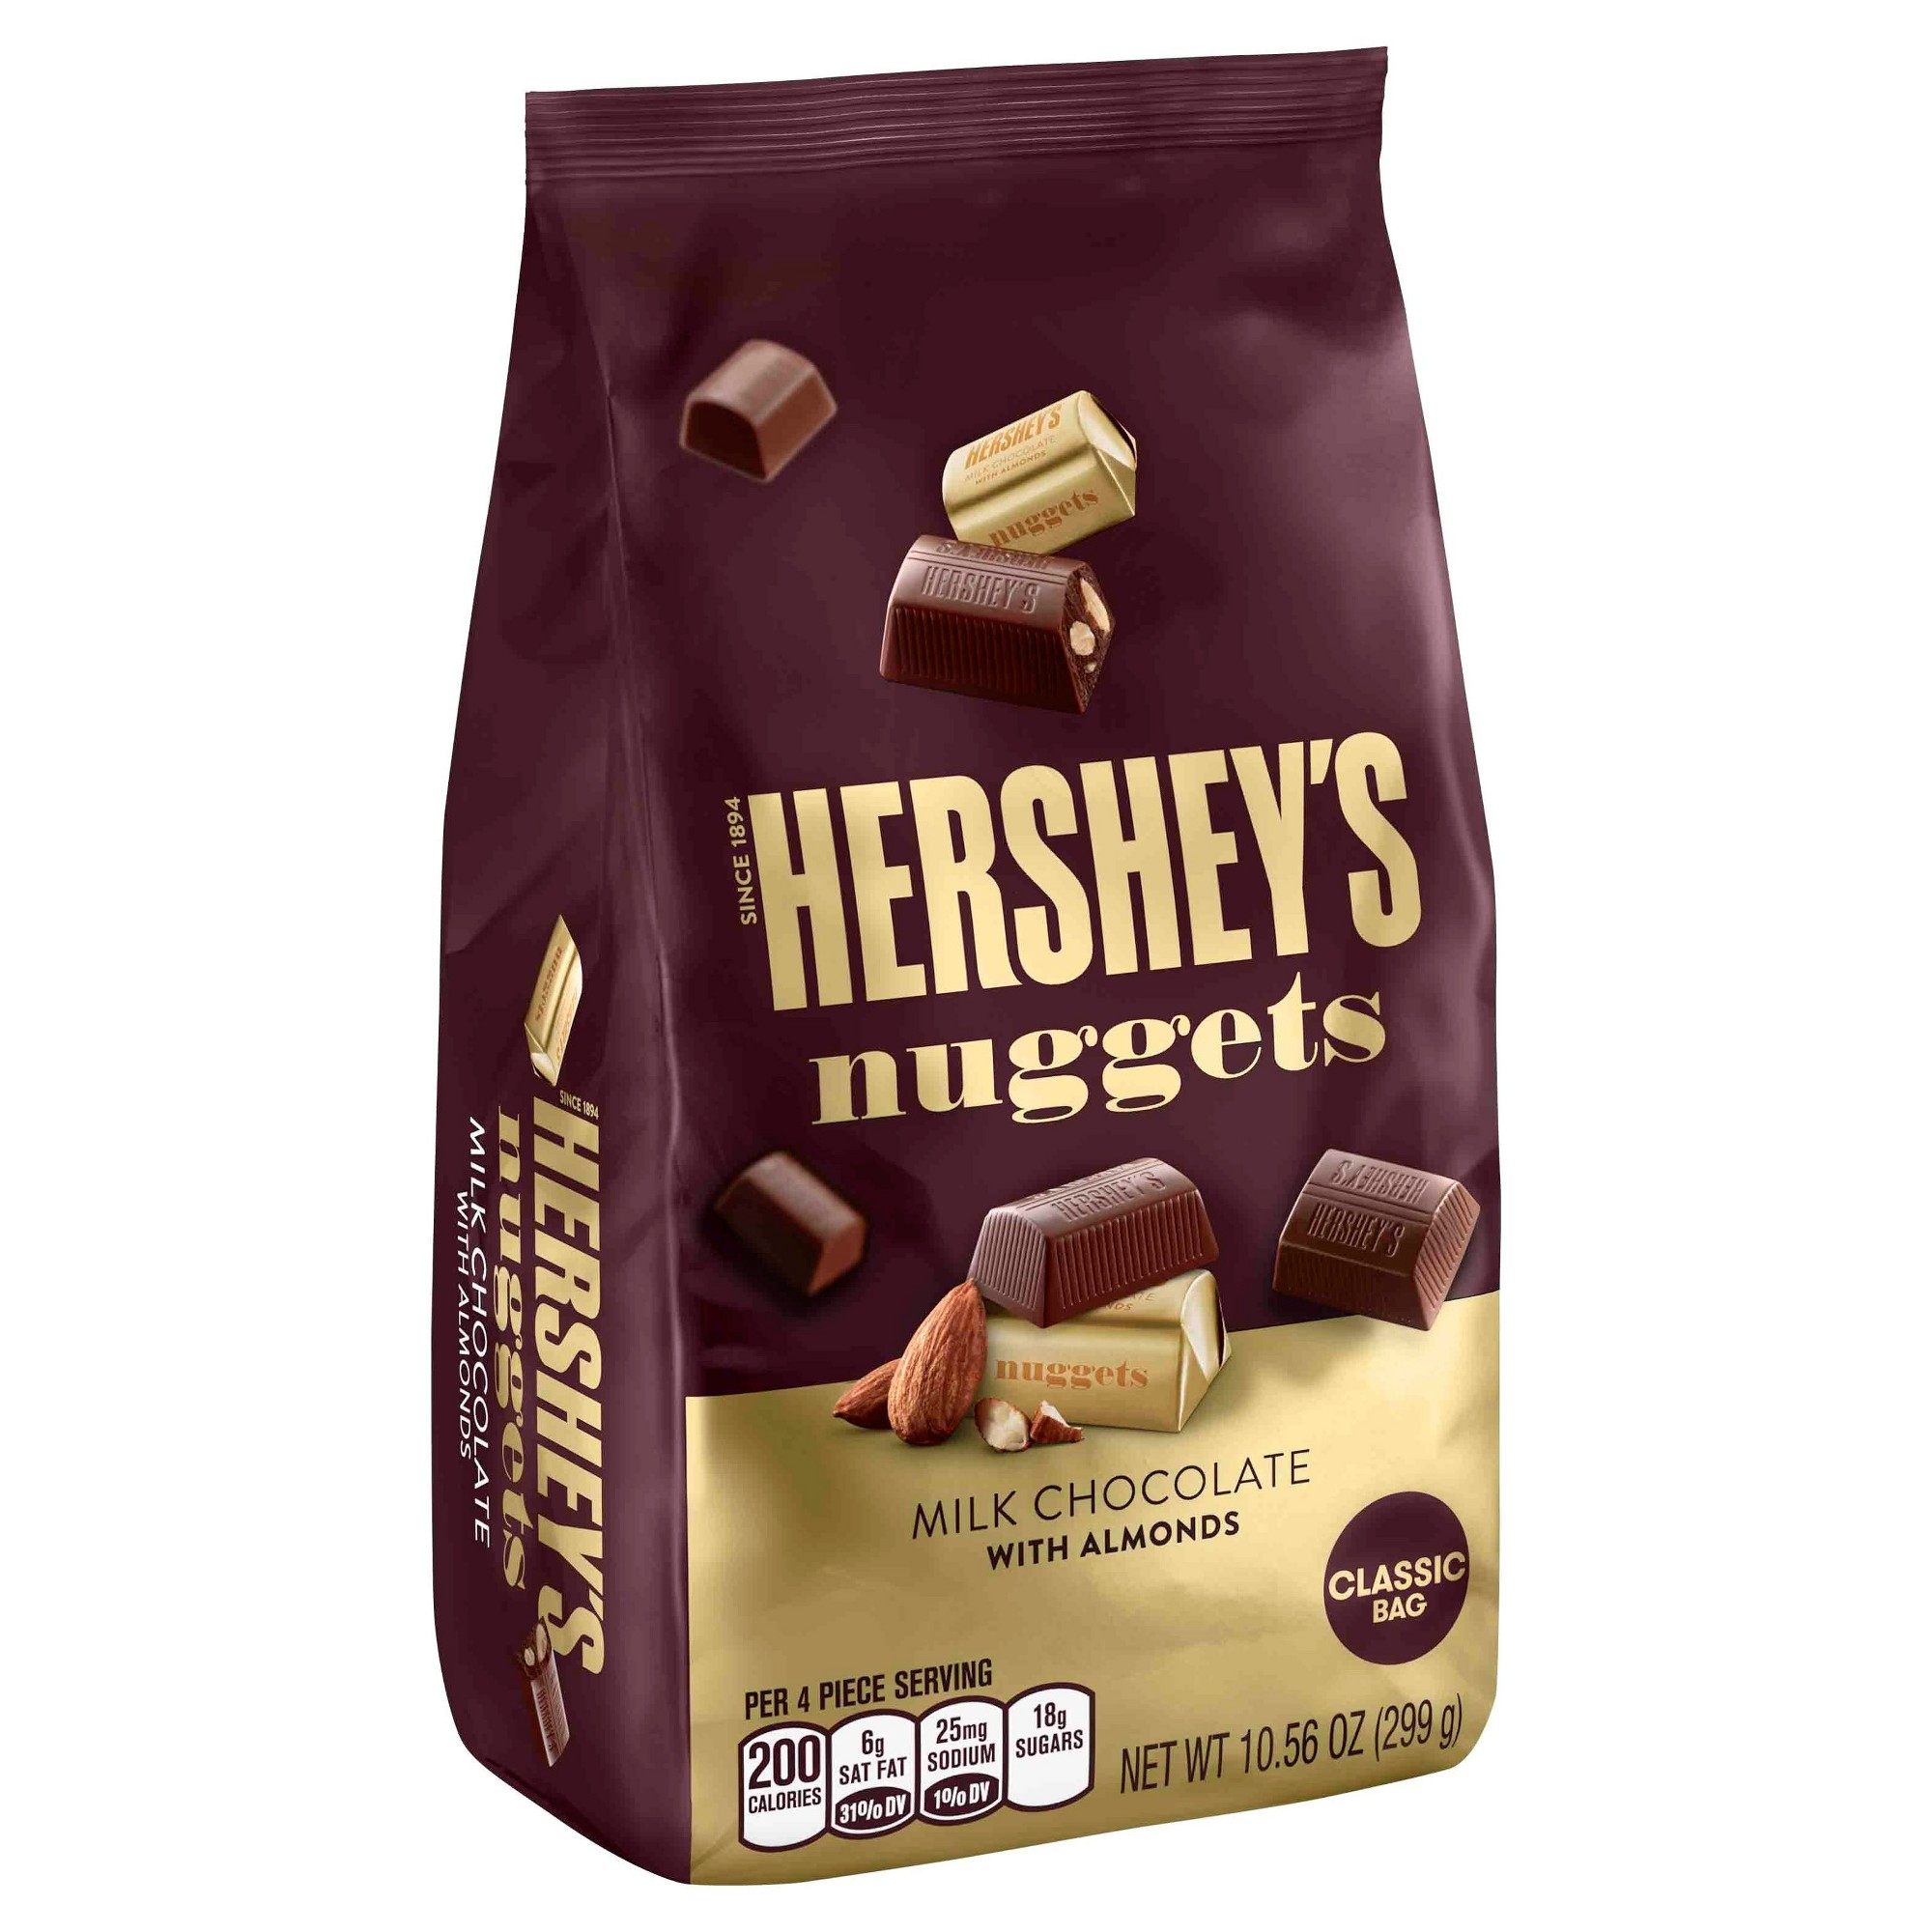 Hershey S Nuggets Milk Chocolate With Almonds Classic Bag 10 56